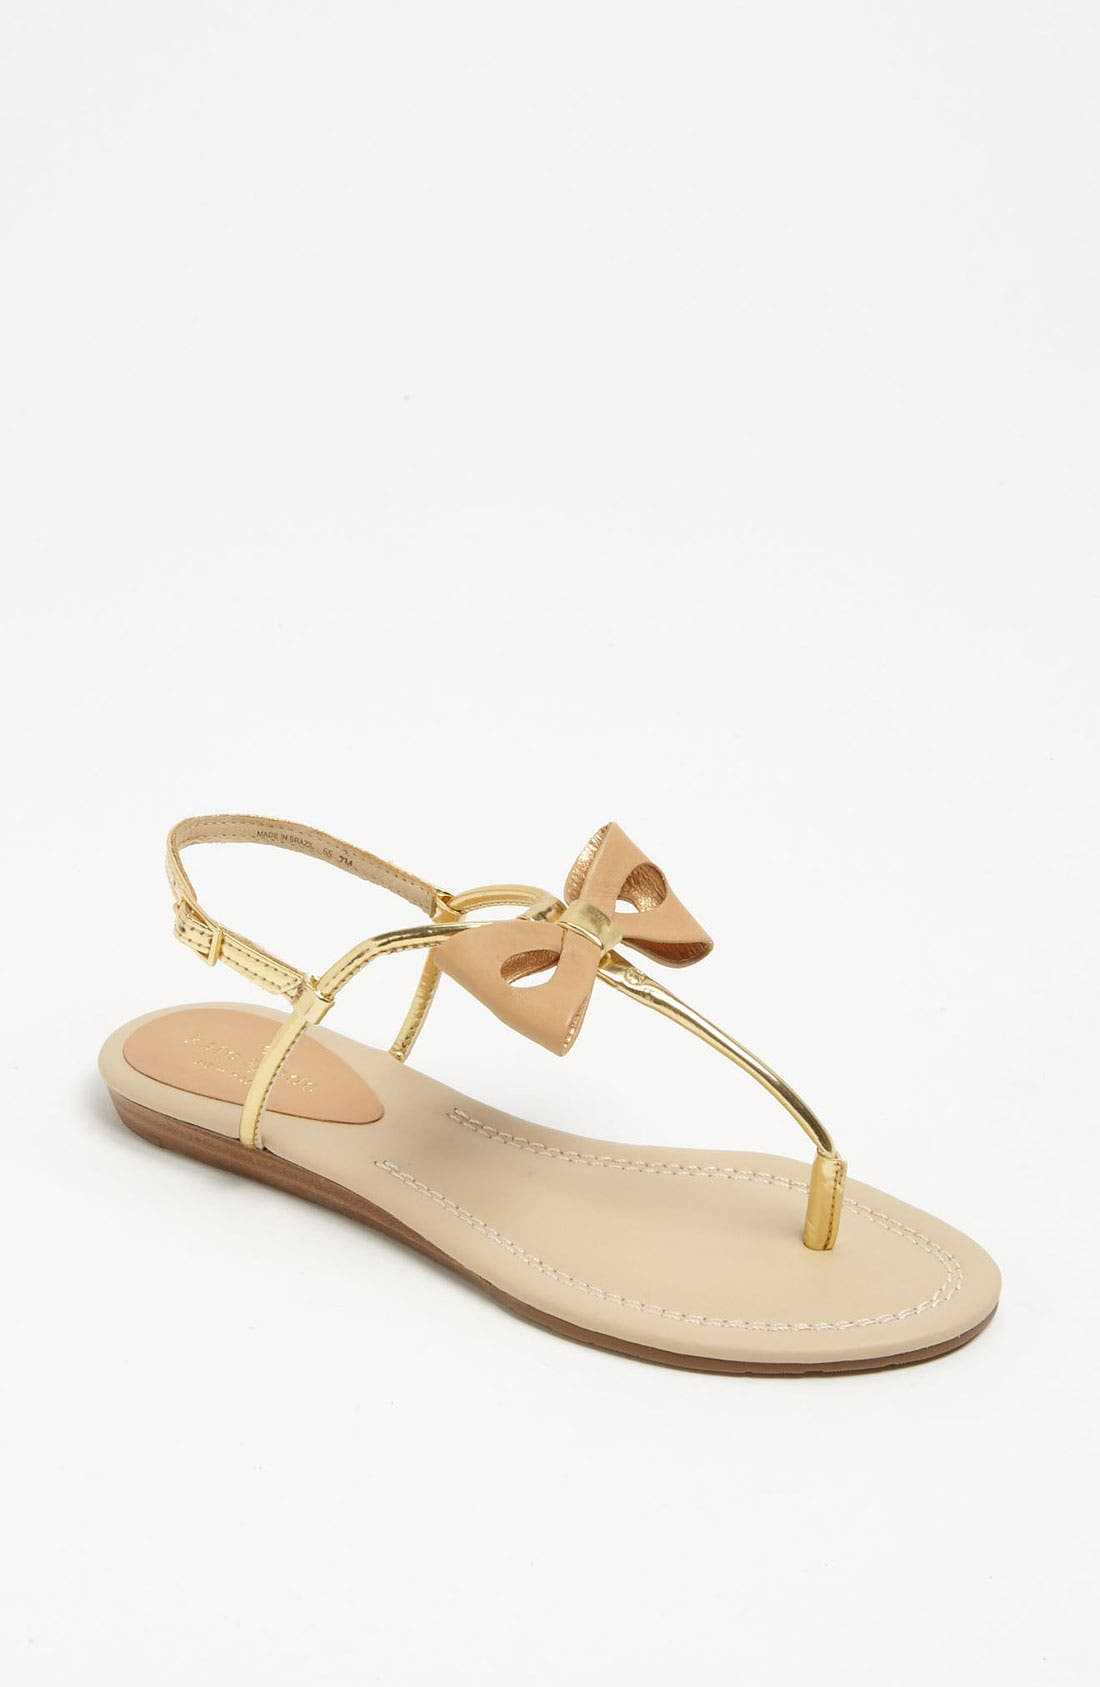 Main Image - kate spade new york 'trendy' sandal